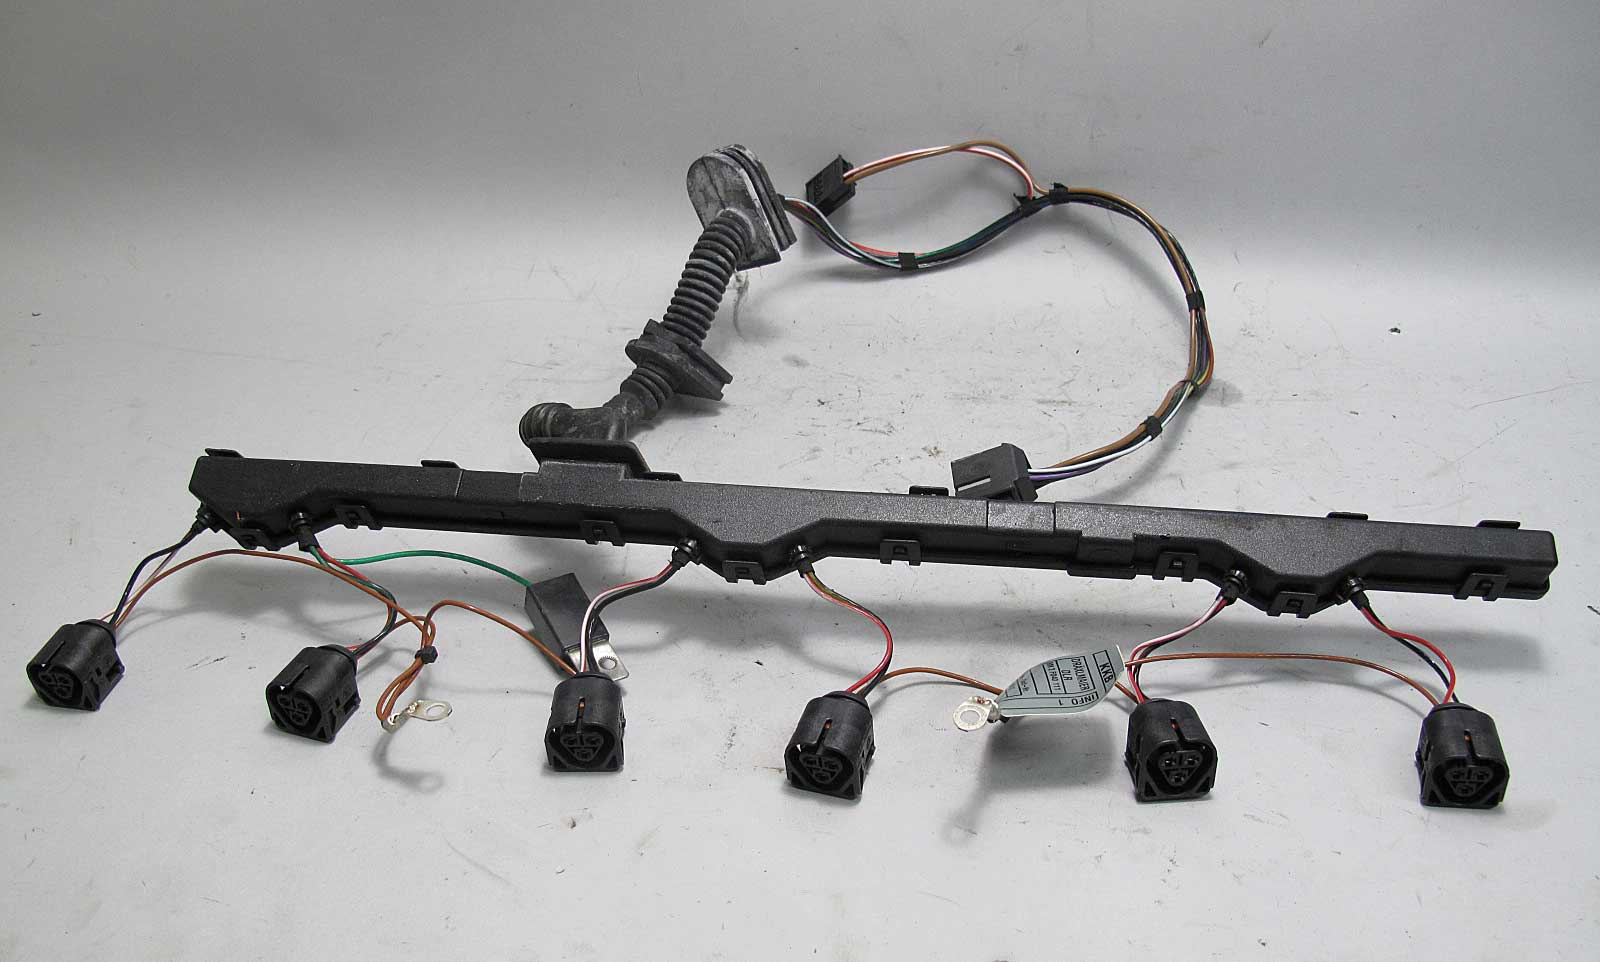 2004 2005 Bmw E60 5 Series M54 Early Ignition Coil Wiring Harness Complete Used